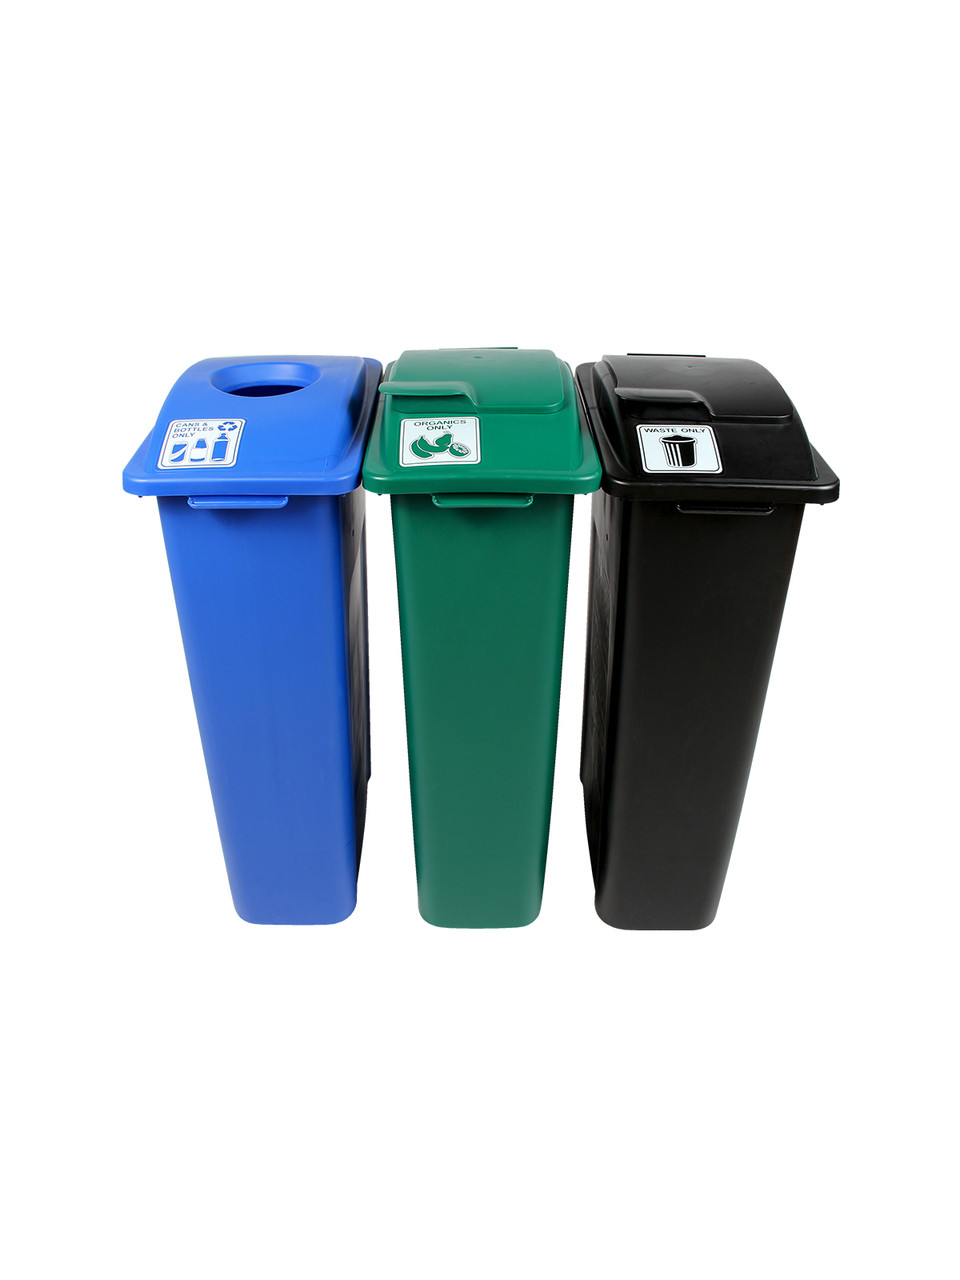 69 Gallon Simple Sort Skinny Recycle Bin Center 8106049-155 (Cans, Organics Lift Lid, Waste Lift Lid)